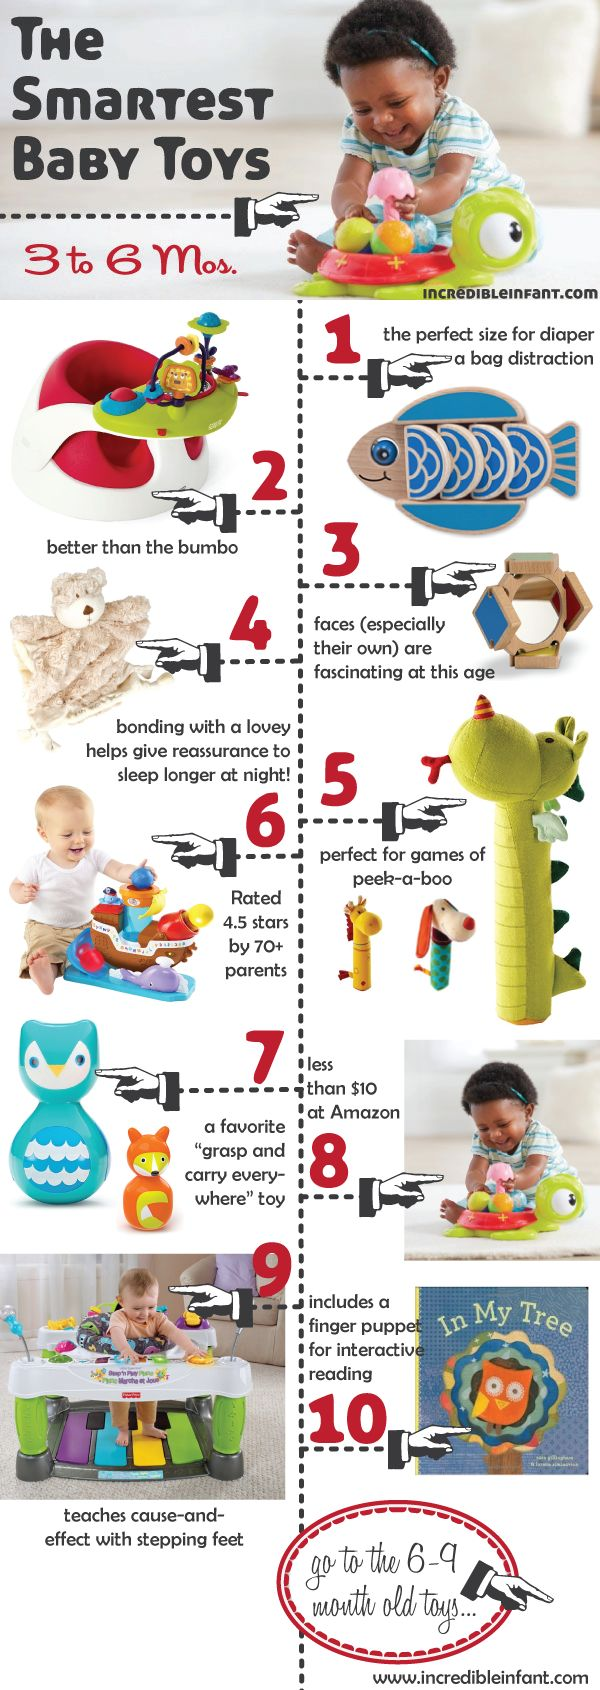 The+Smartest+Baby+Toys+for+3-6+Months+http://www.incredibleinfant.com